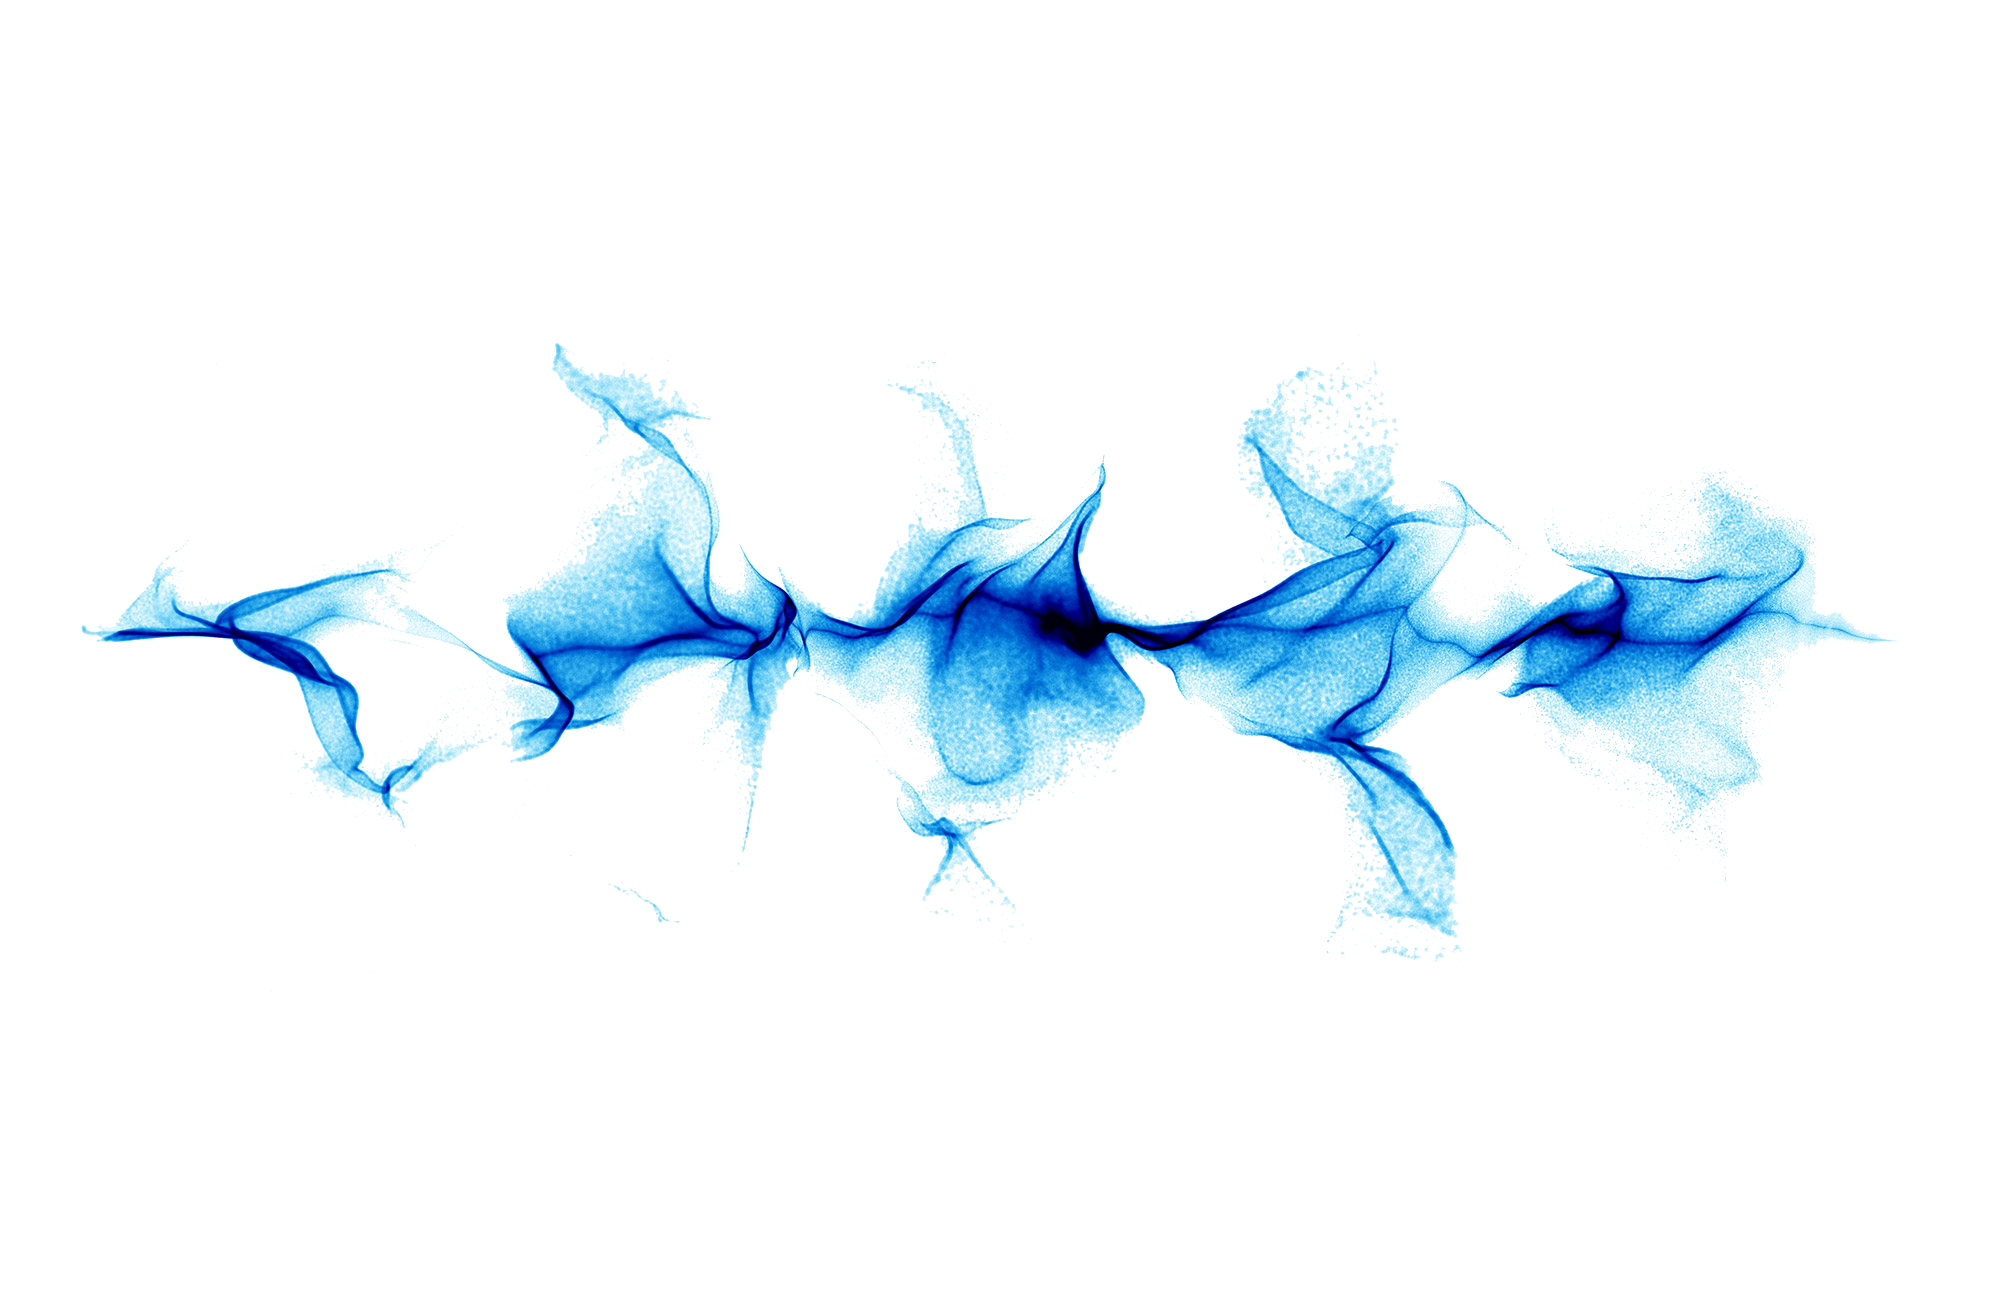 Sound Wave PNG Images Transparent Free Download.